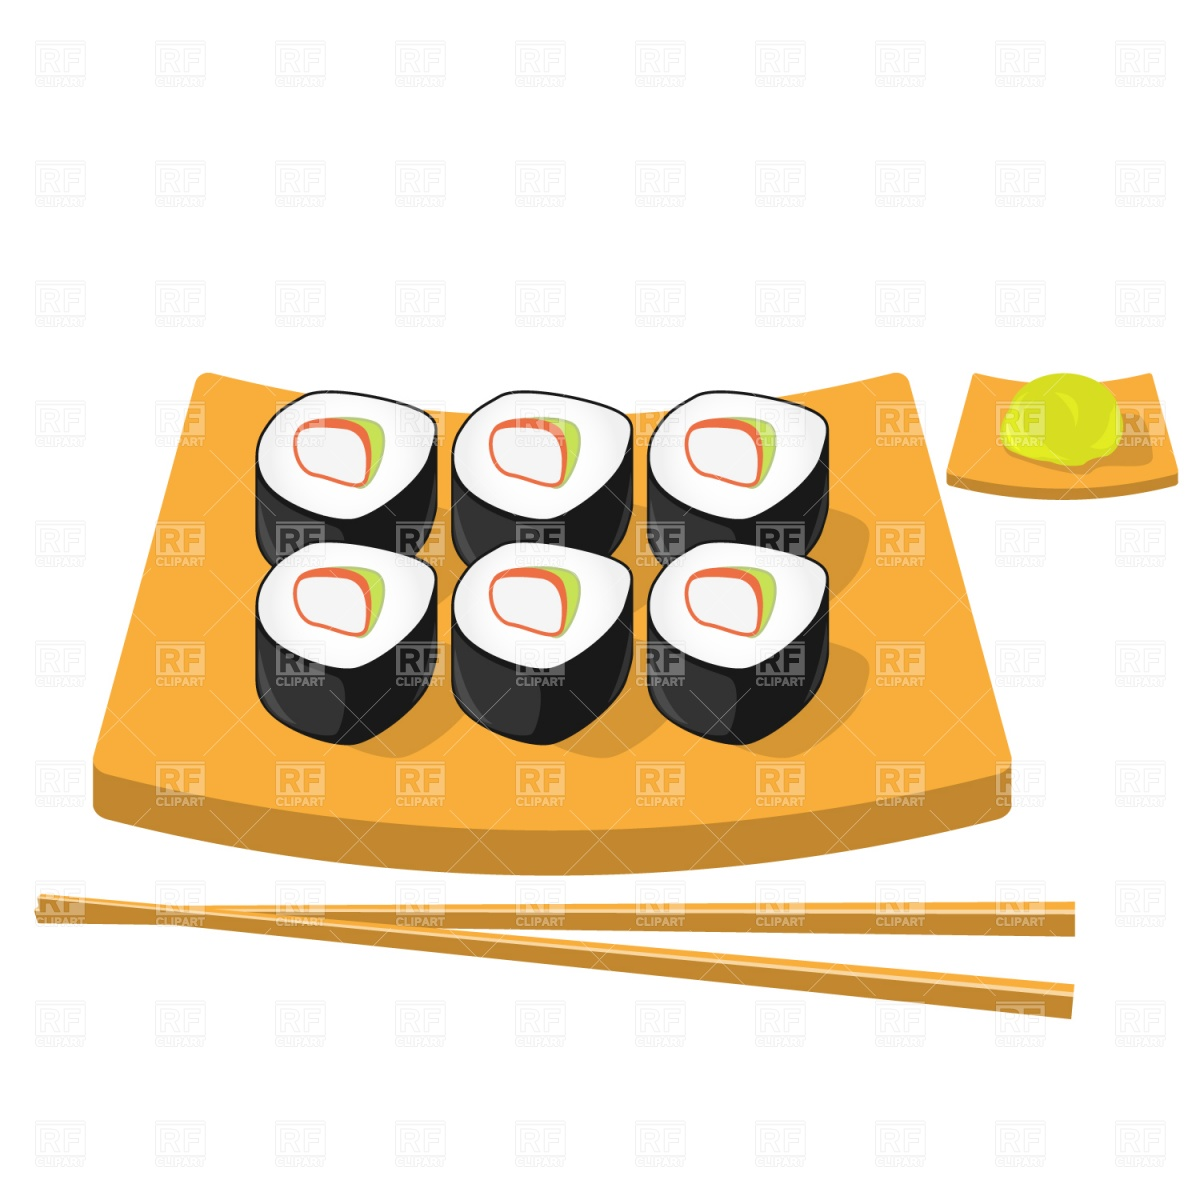 Chopsticks, wasabi and roll sushi Vector Image #1477.